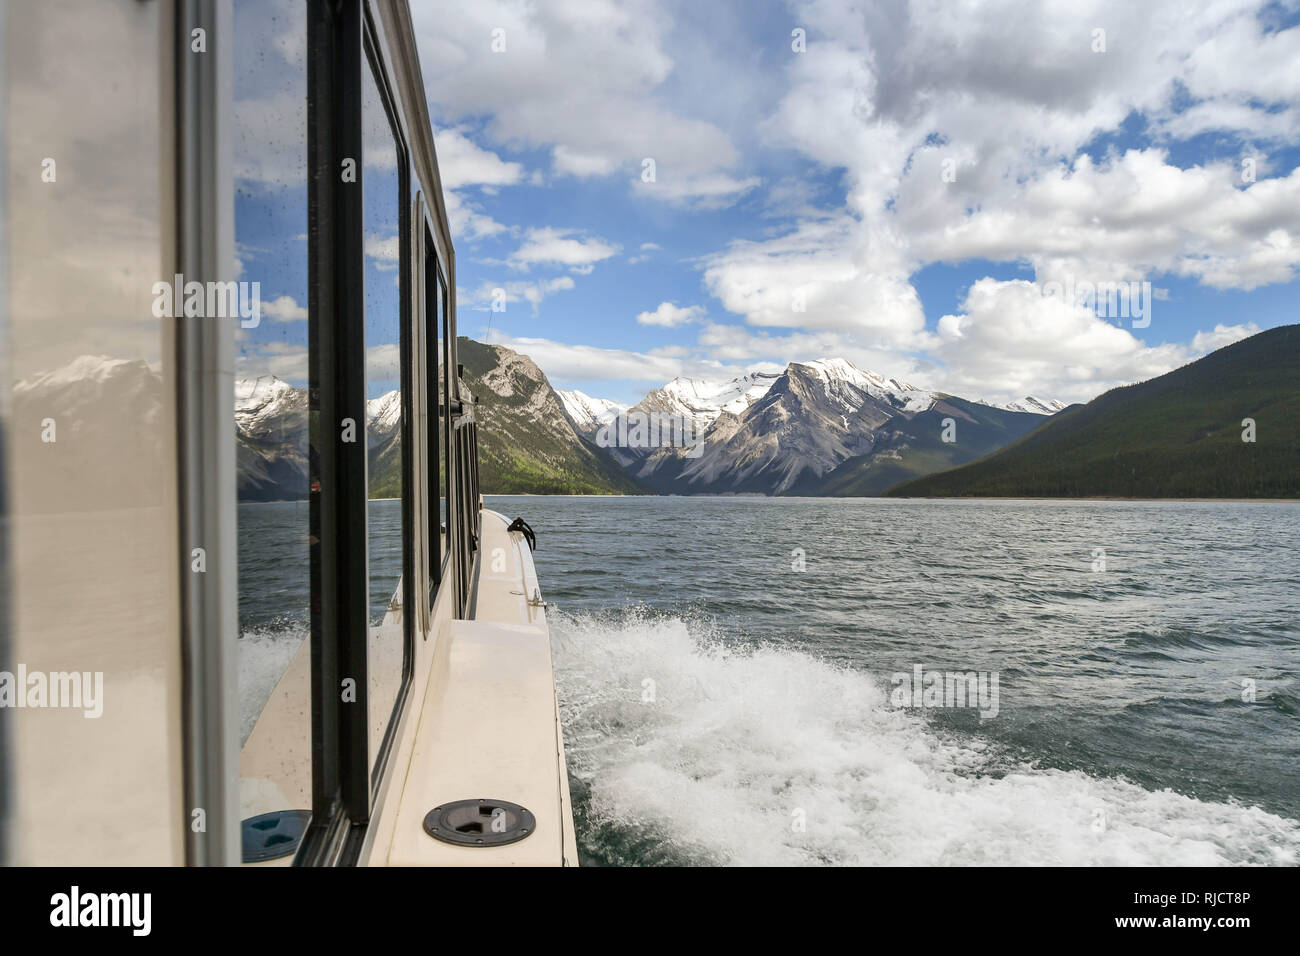 BANFF, AB, CANADA - JUNE 2018: wake of a small tourist boat cruising on Lake Minnewanka near Banff. Stock Photo